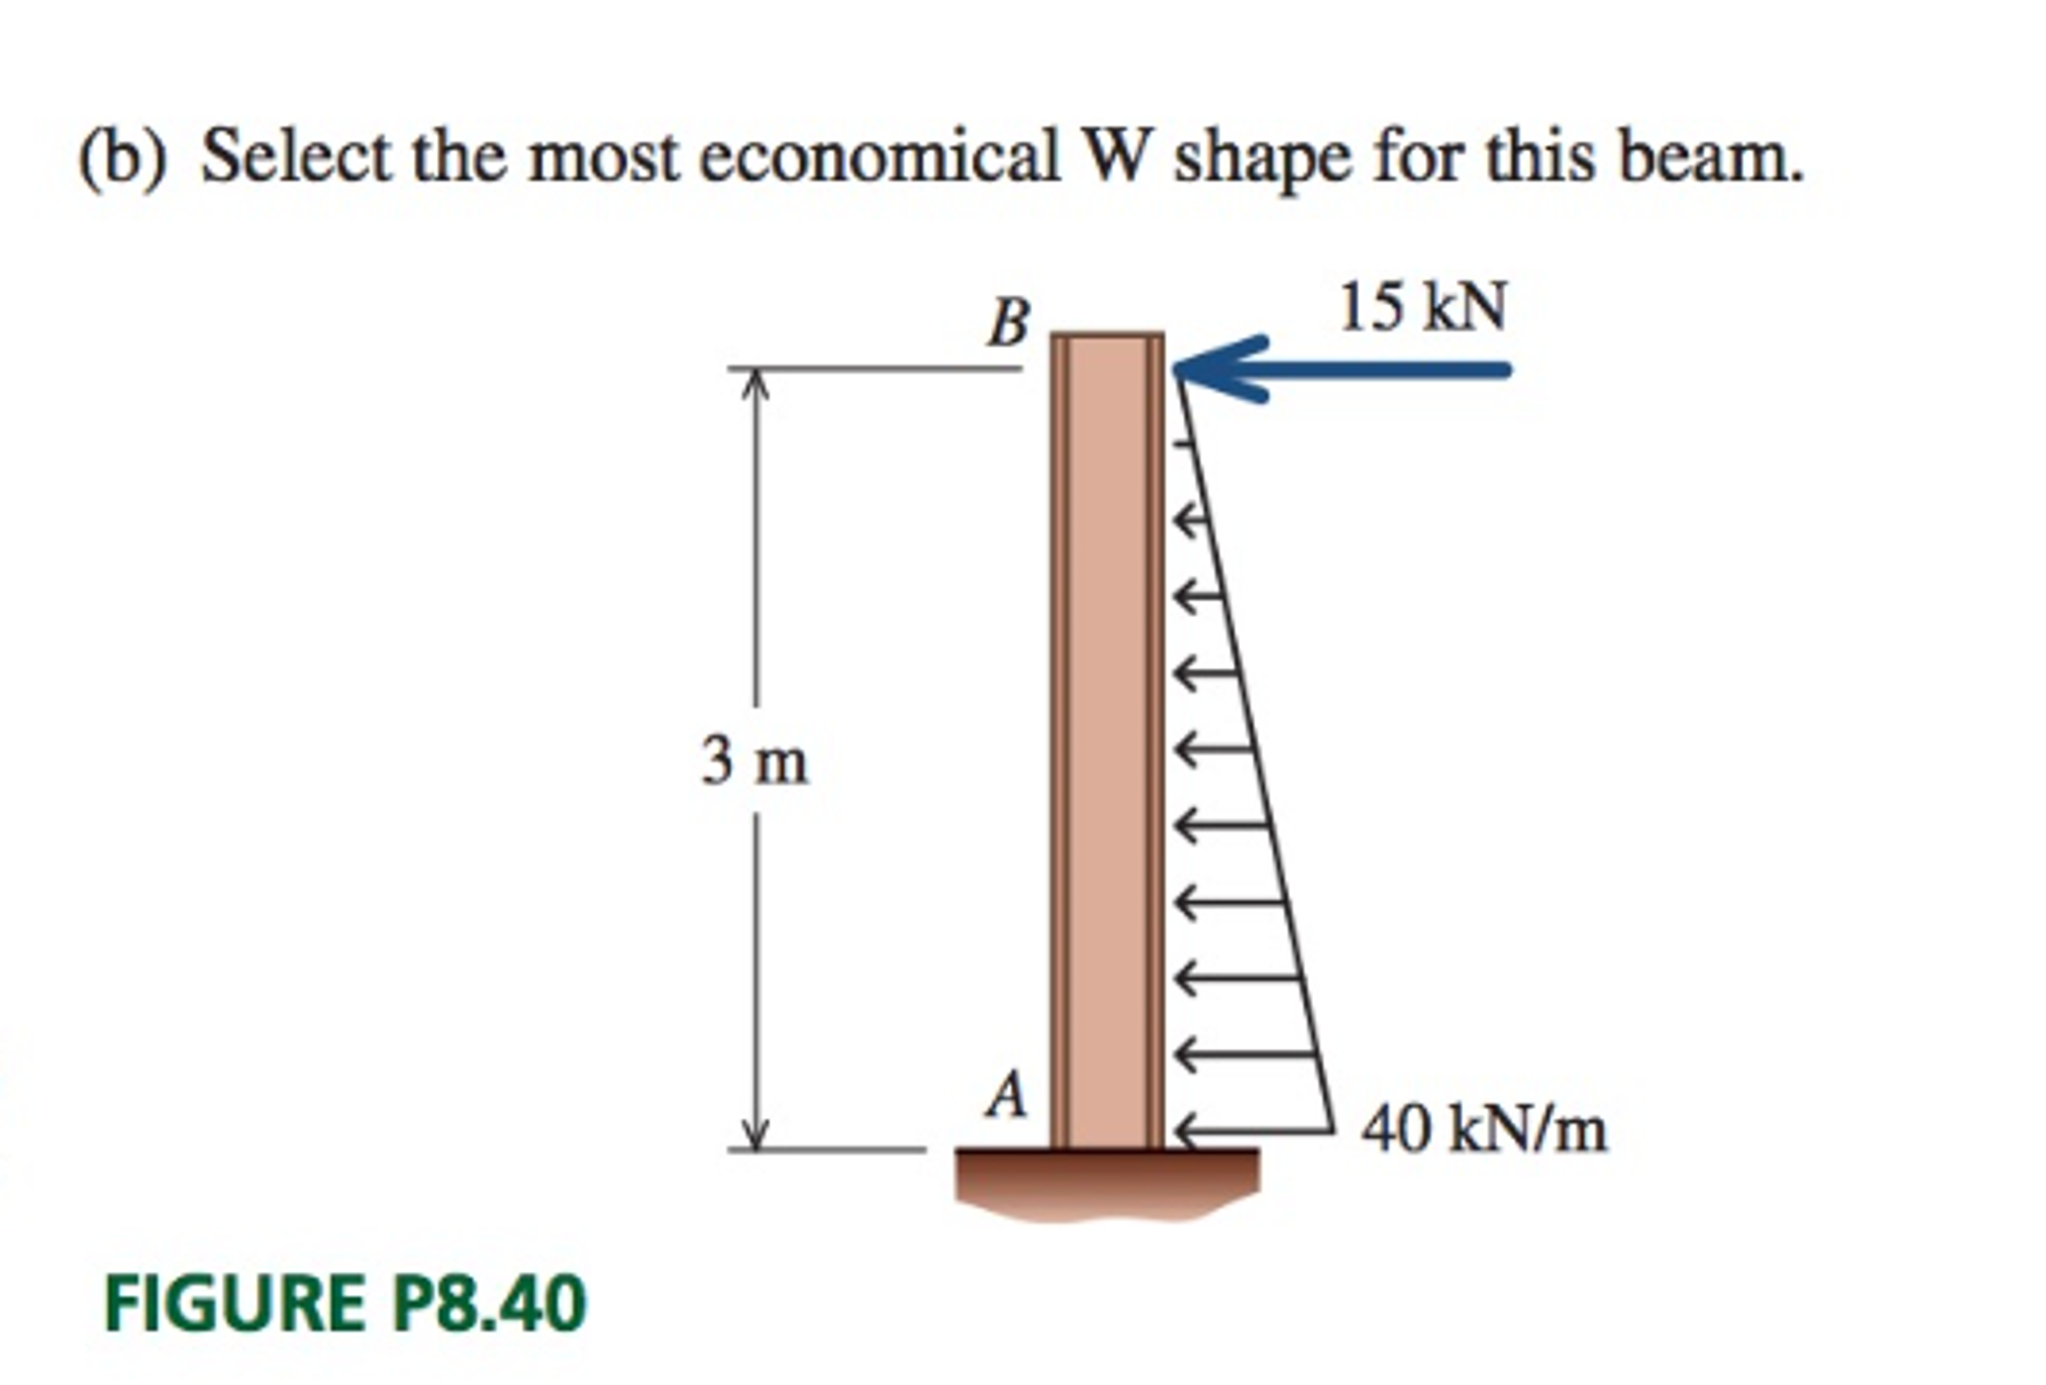 Mechanical engineering archive october 28 2016 chegg the beam shown in figure p840 will be constructed from a standard steel w shape with an allowable bending stress of 165 mpa a develop a list of four pooptronica